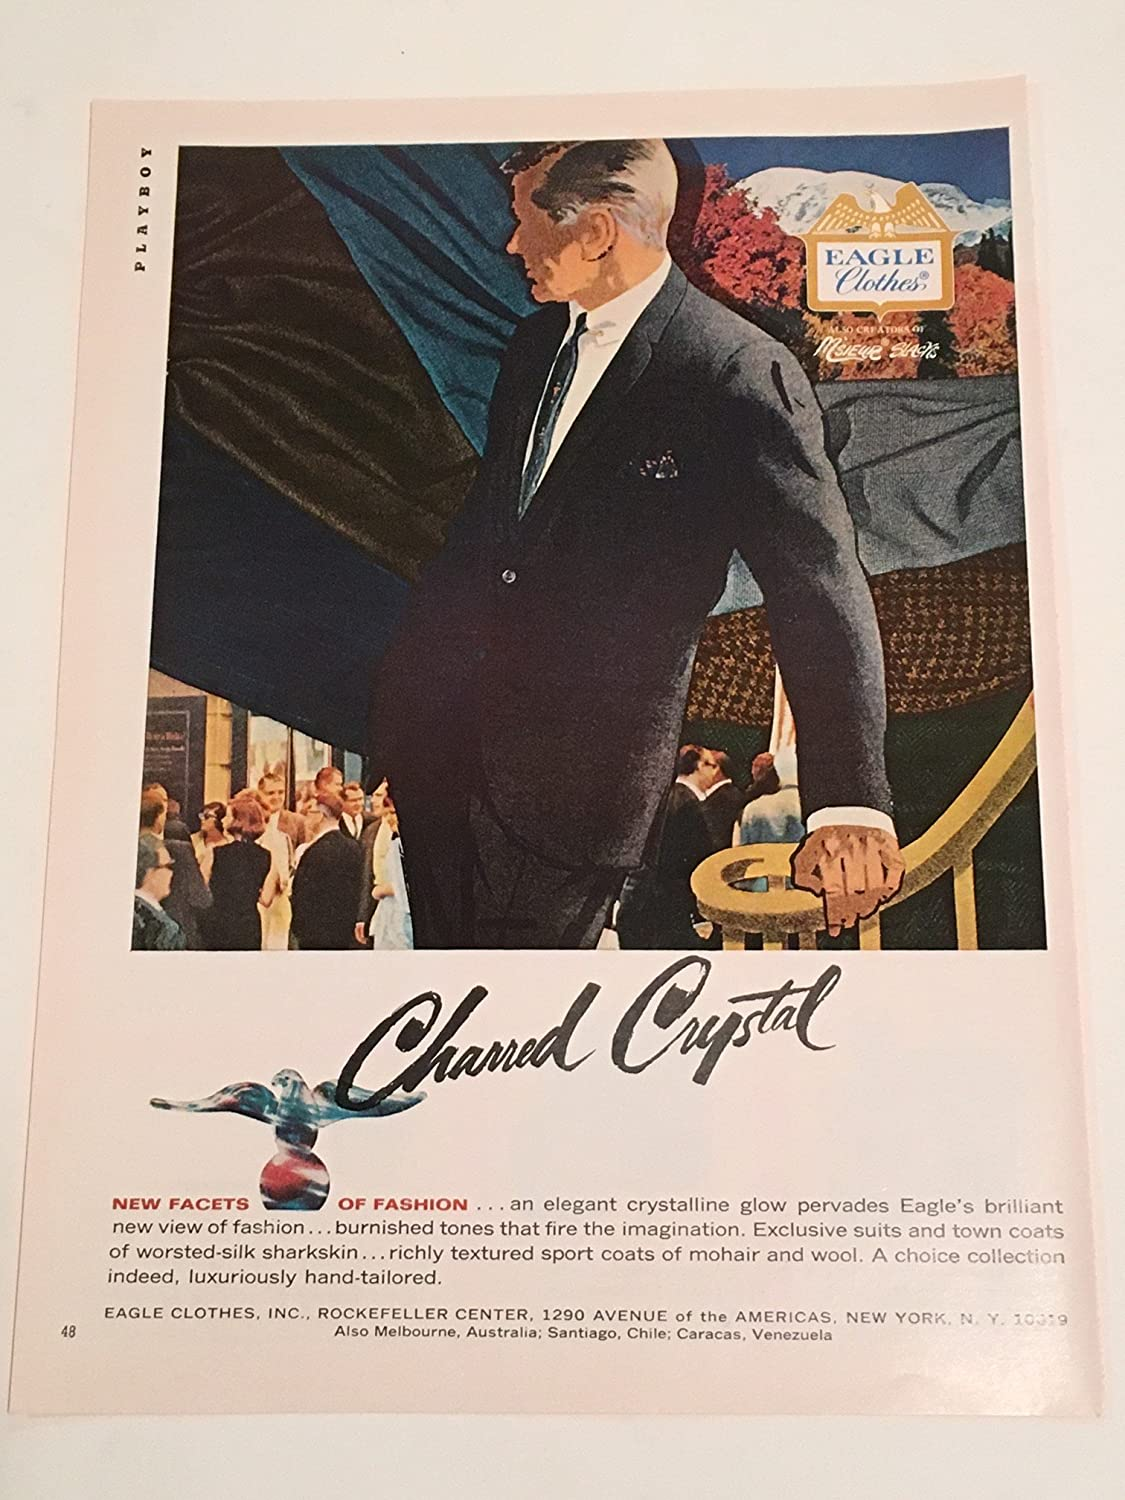 Amazon.com: 1965 Eagle Clothes Charred Crystal Mens Clothing Magazine Print Advertisement: Entertainment Collectibles